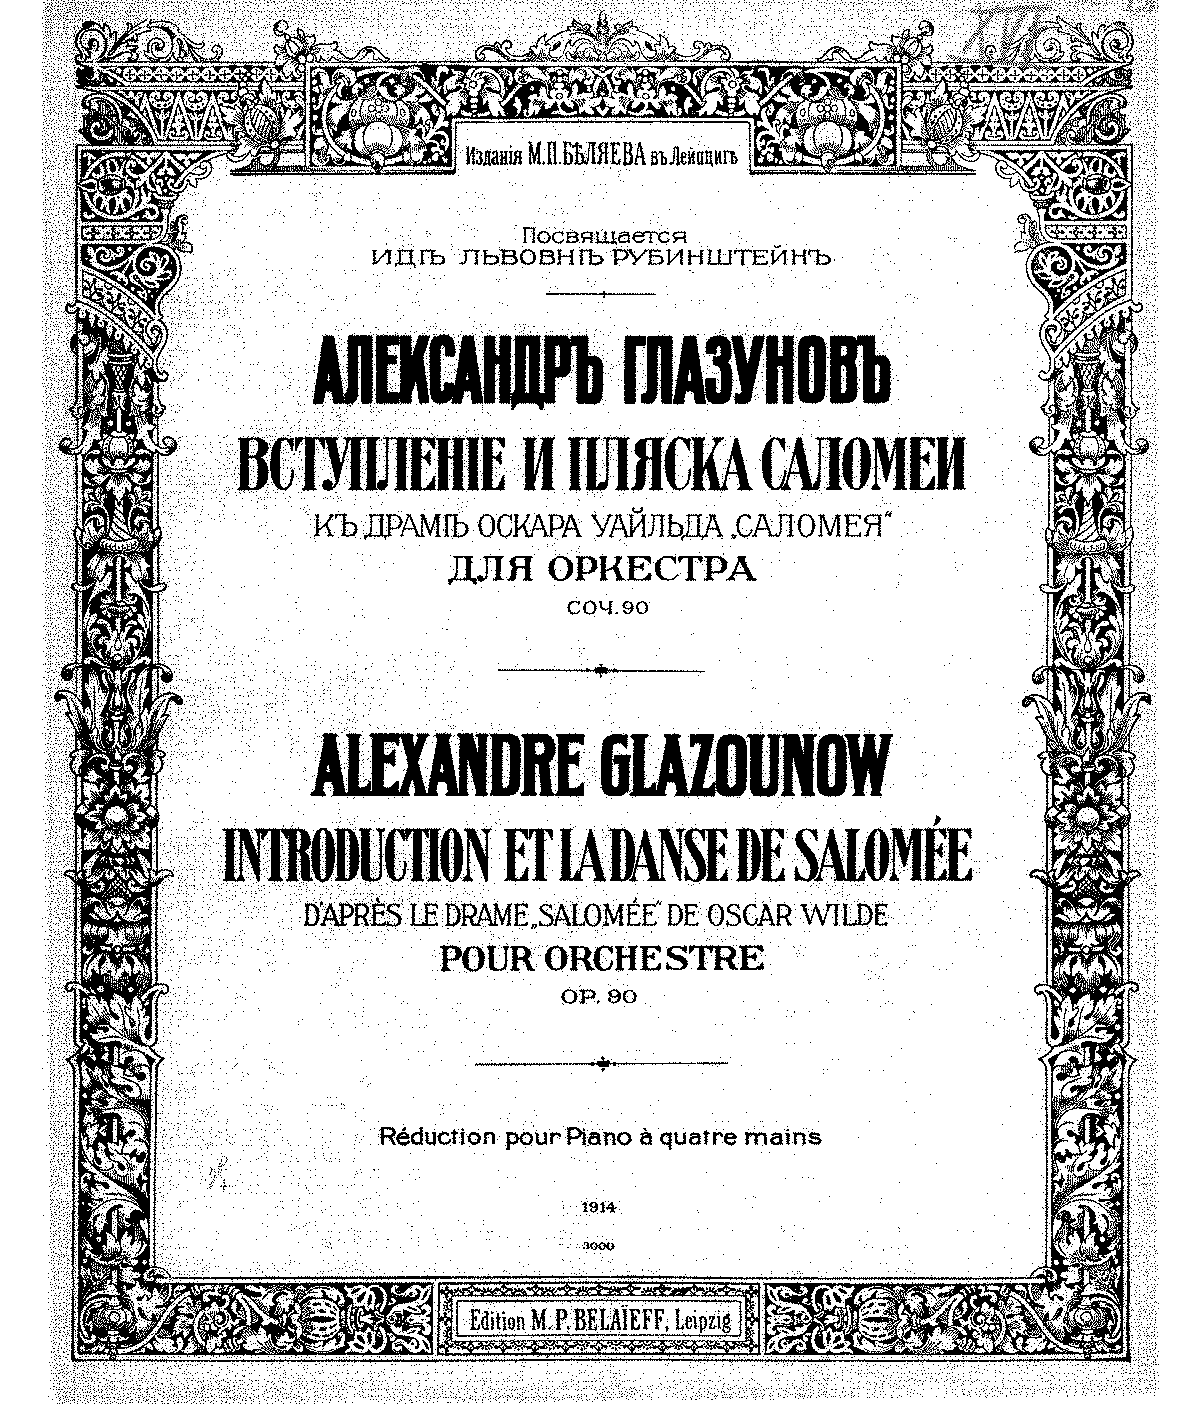 Glazunov - Op.90 - Introduction and Dance of Salomé to the drama of Oscar Wilde.pdf